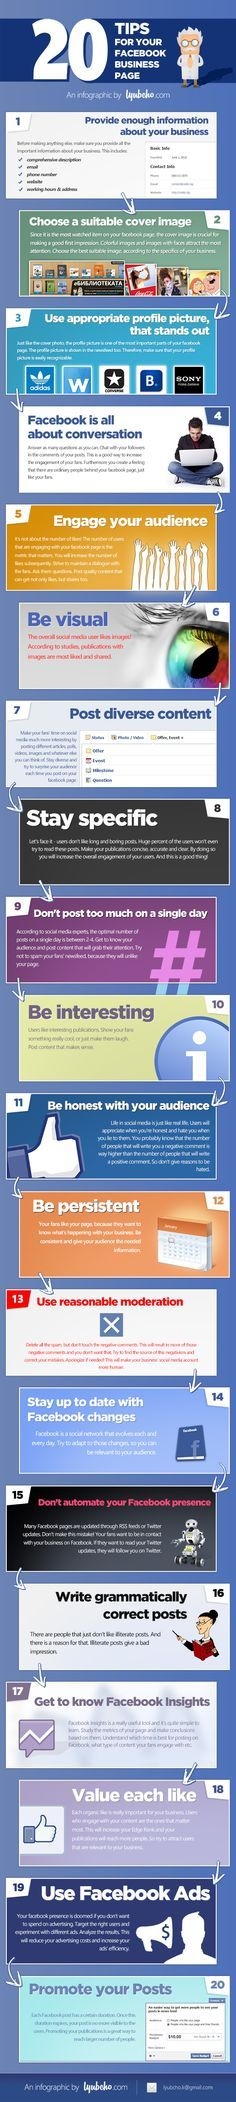 20 Facebook Tips to Enhance Your Page Presence [Infographic]  Good tips for your Facebook page.